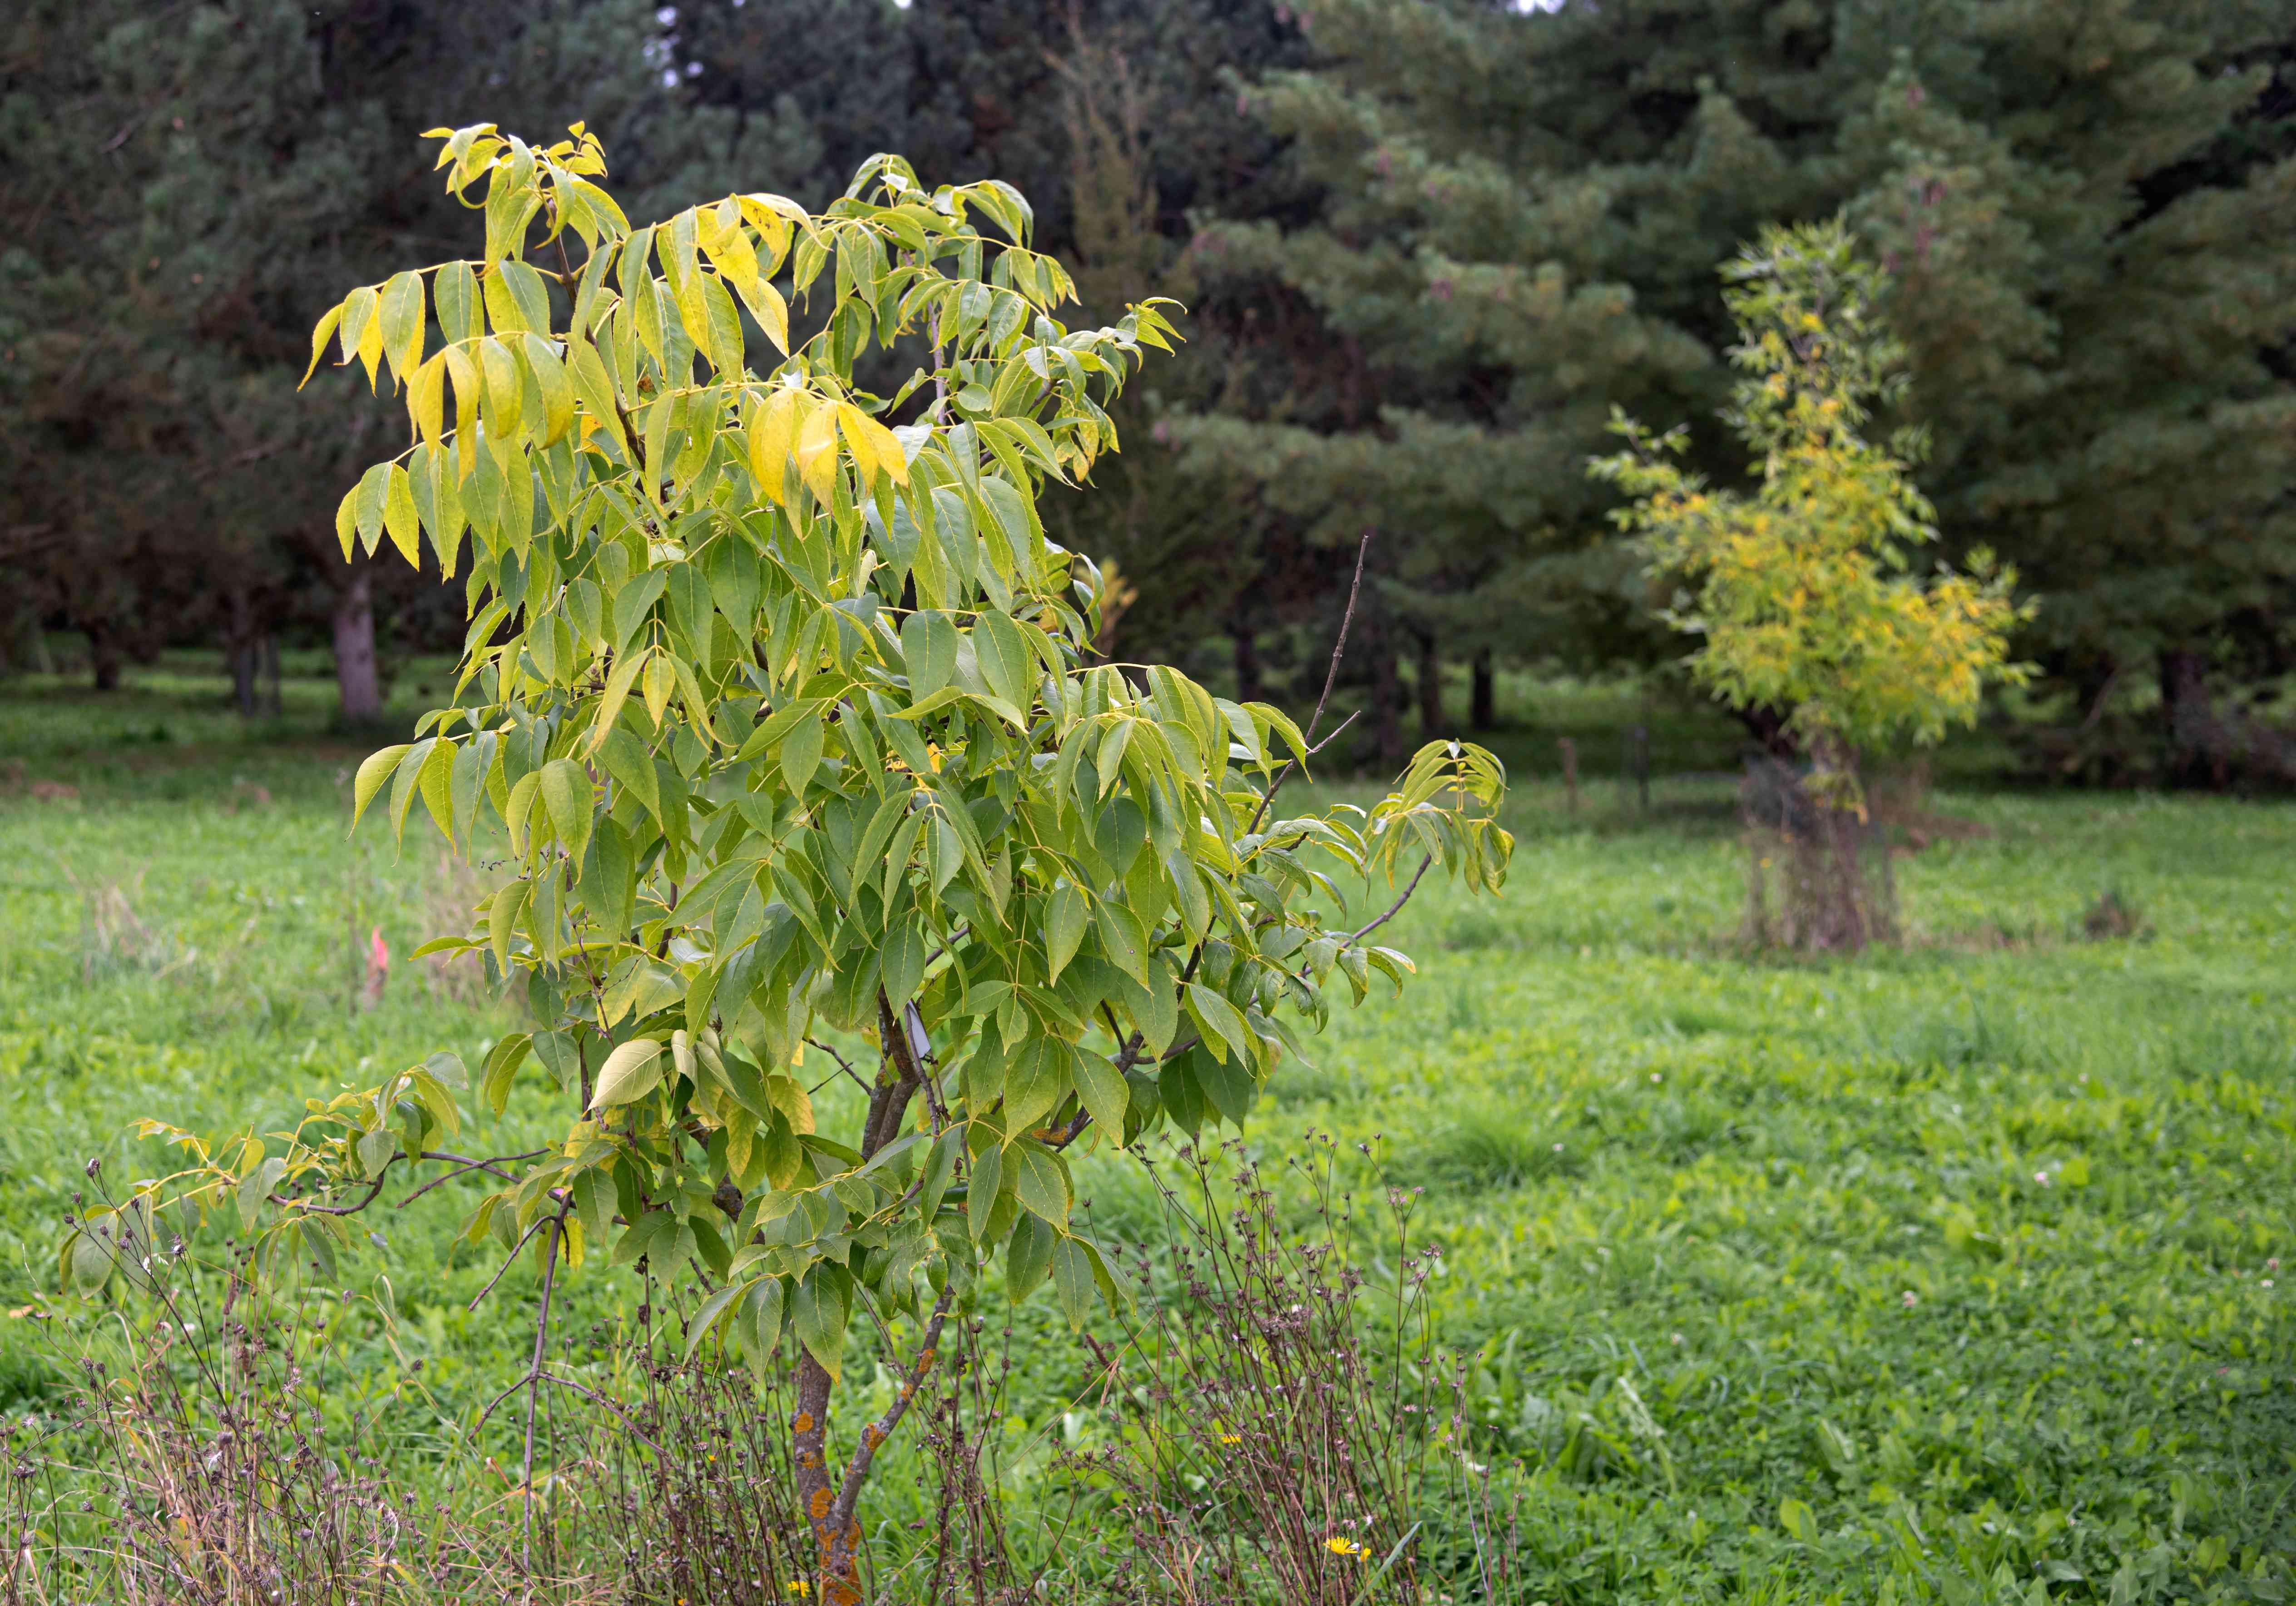 Blue ash trees in middle of field with yellow-green leaves on branches